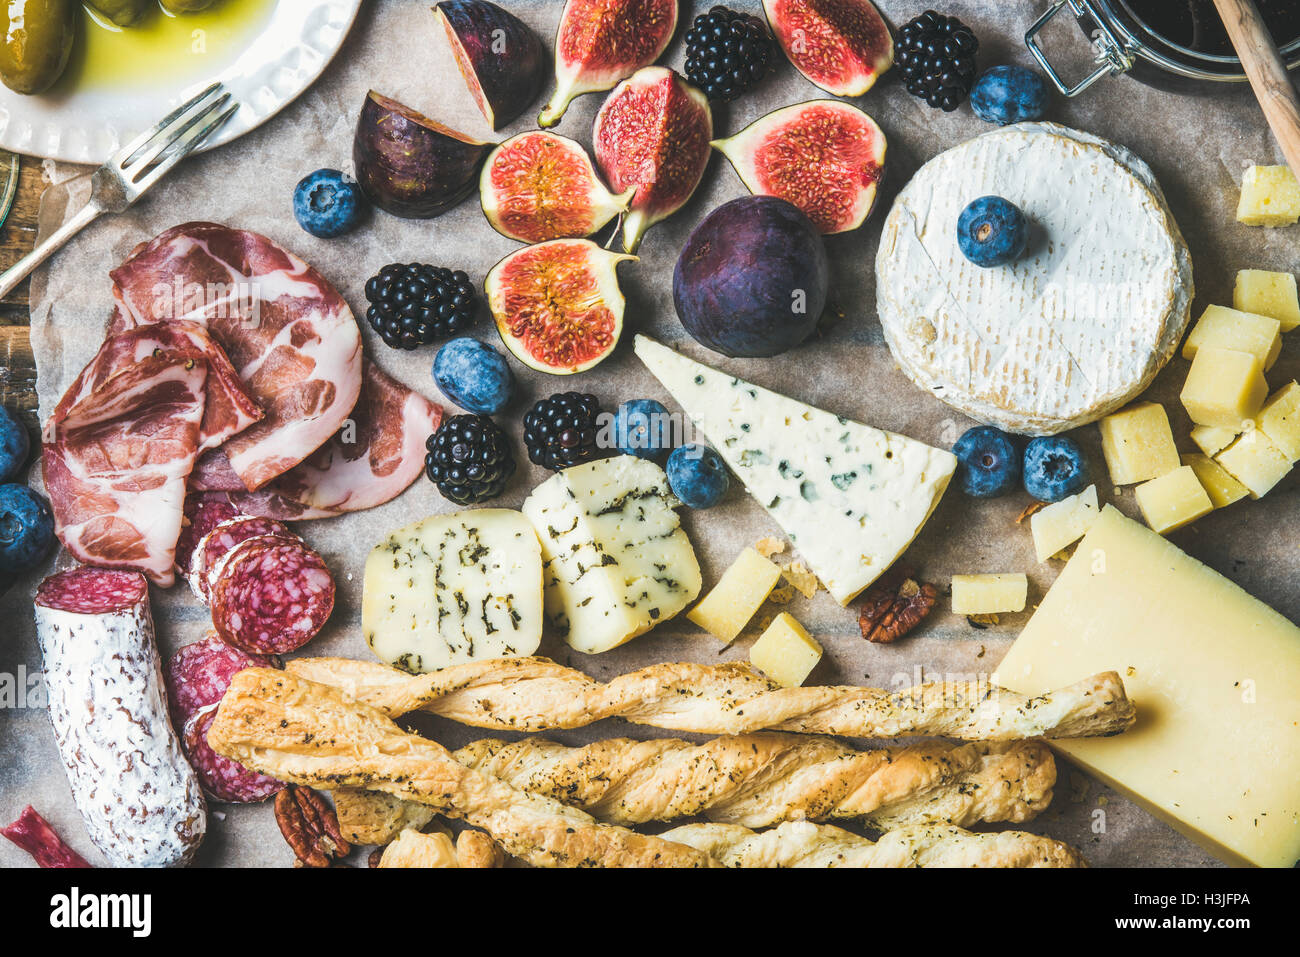 Close-up de vin snack-set avec variété de viande, pain, olives vertes, figues, noix et baies sur un papier Photo Stock